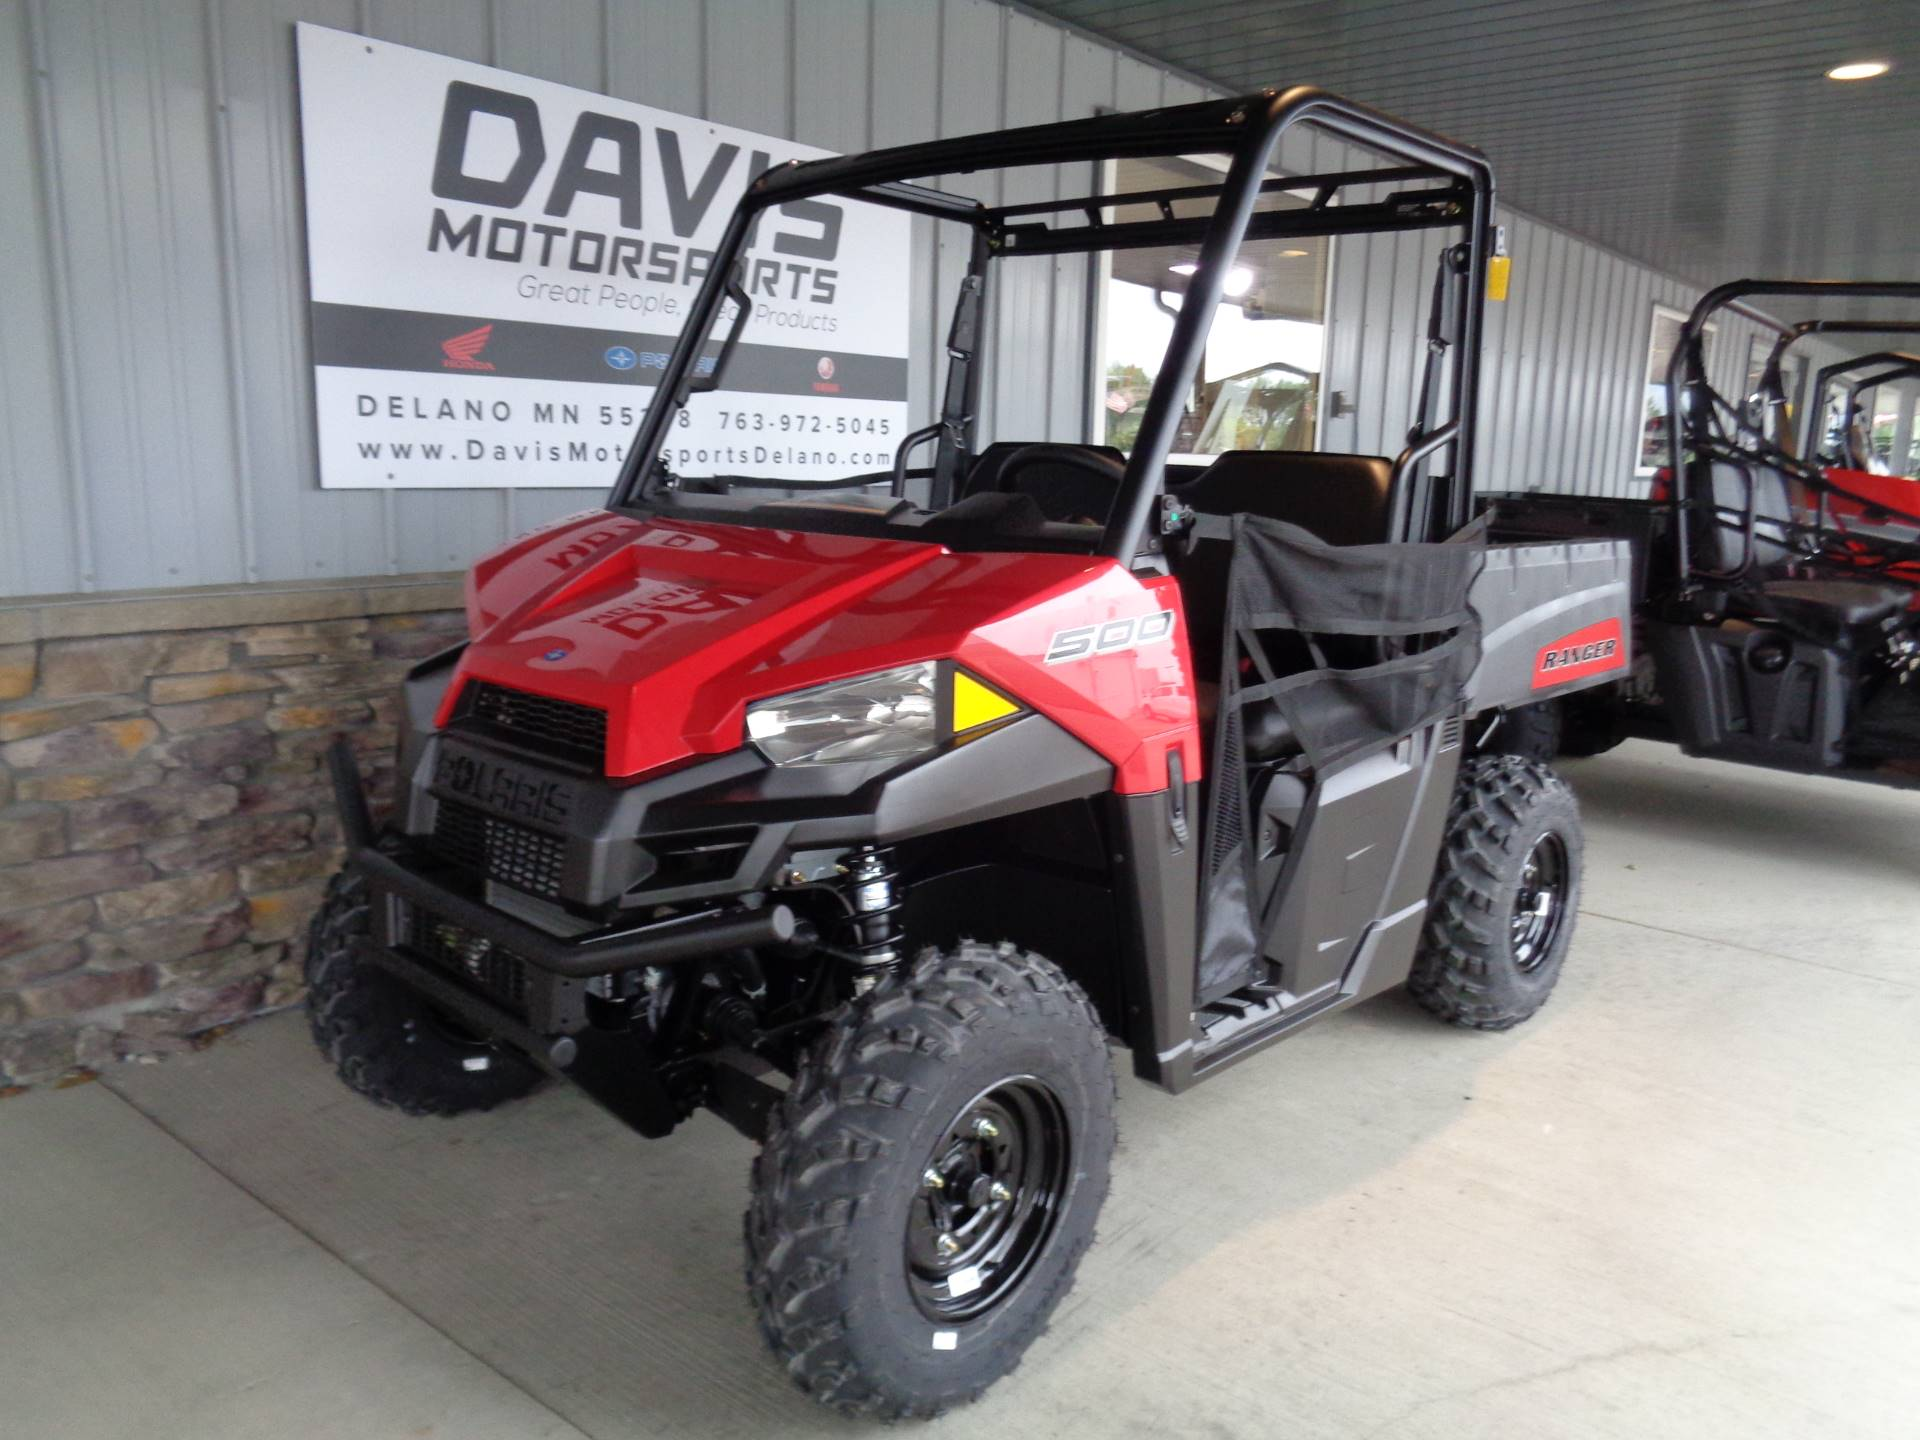 2020 Polaris Ranger 500 in Delano, Minnesota - Photo 4